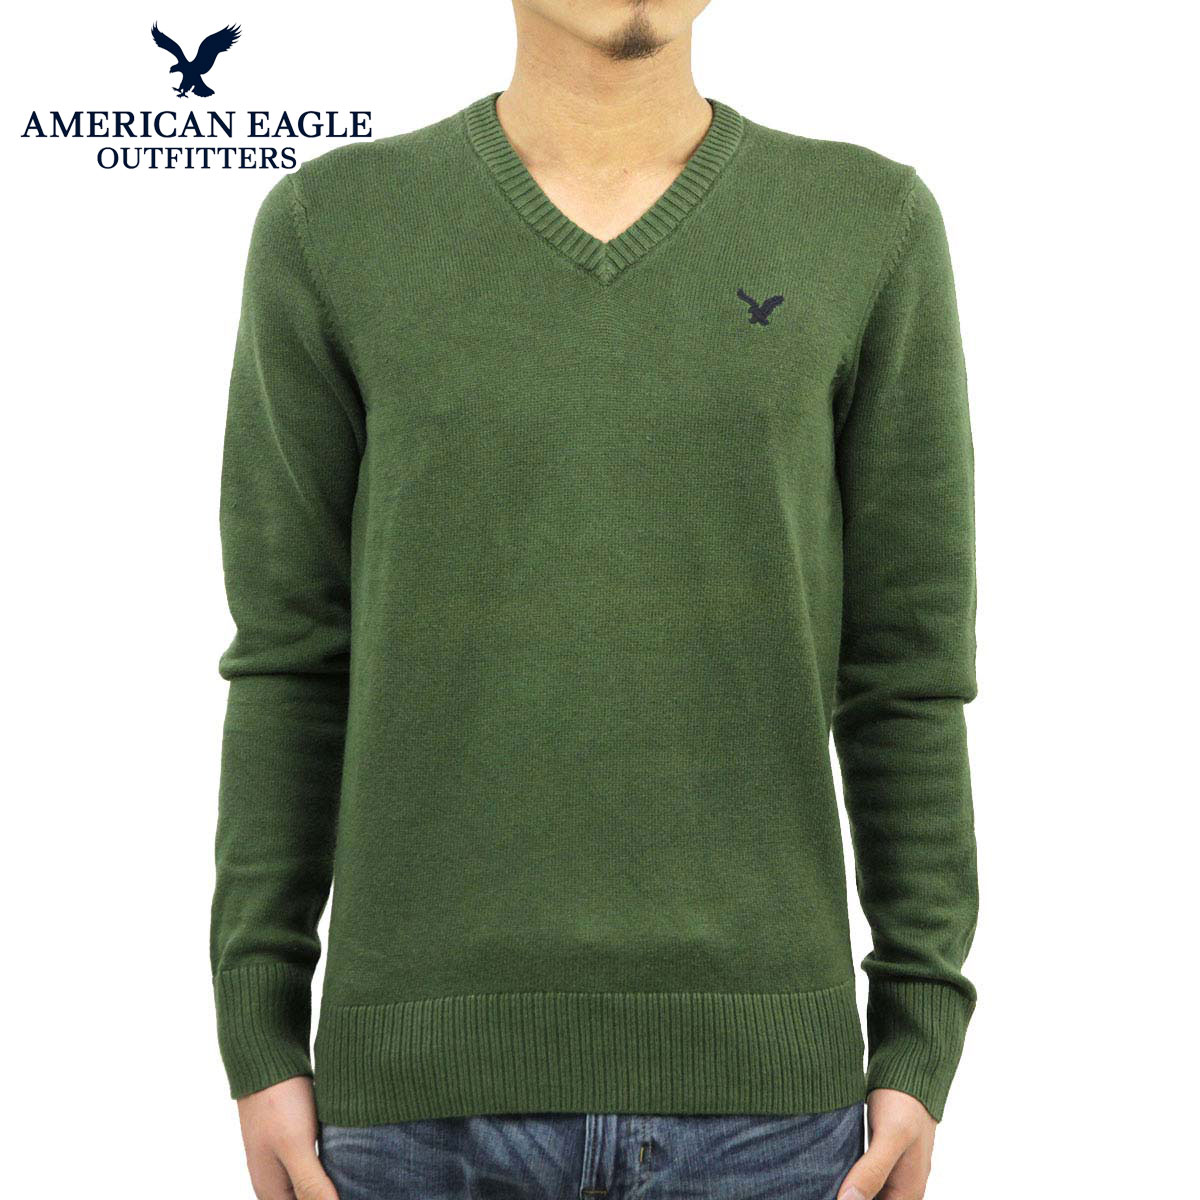 d21e562a86 30%OFF sale American eagle AMERICAN EAGLE regular article men V neck  sweater AE green 1144-9384 D20S30